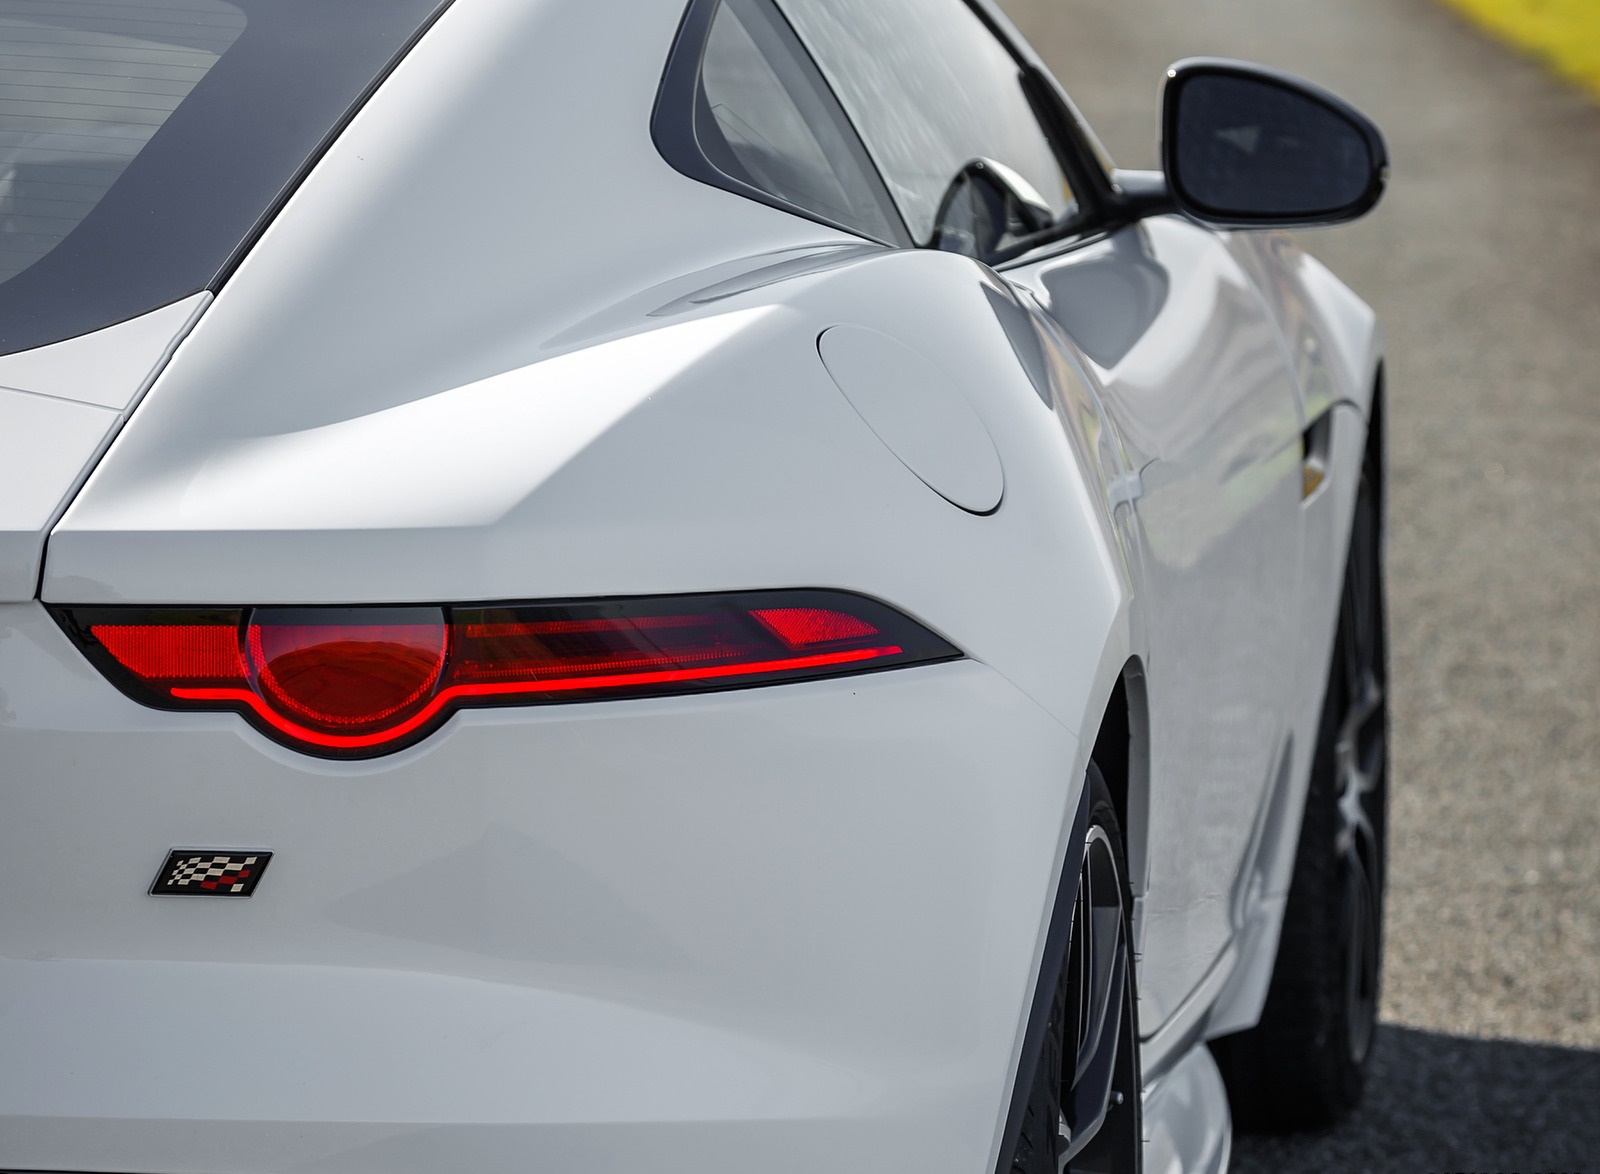 2019 Jaguar F-Type Chequered Flag Edition Tail Light Wallpaper (12)